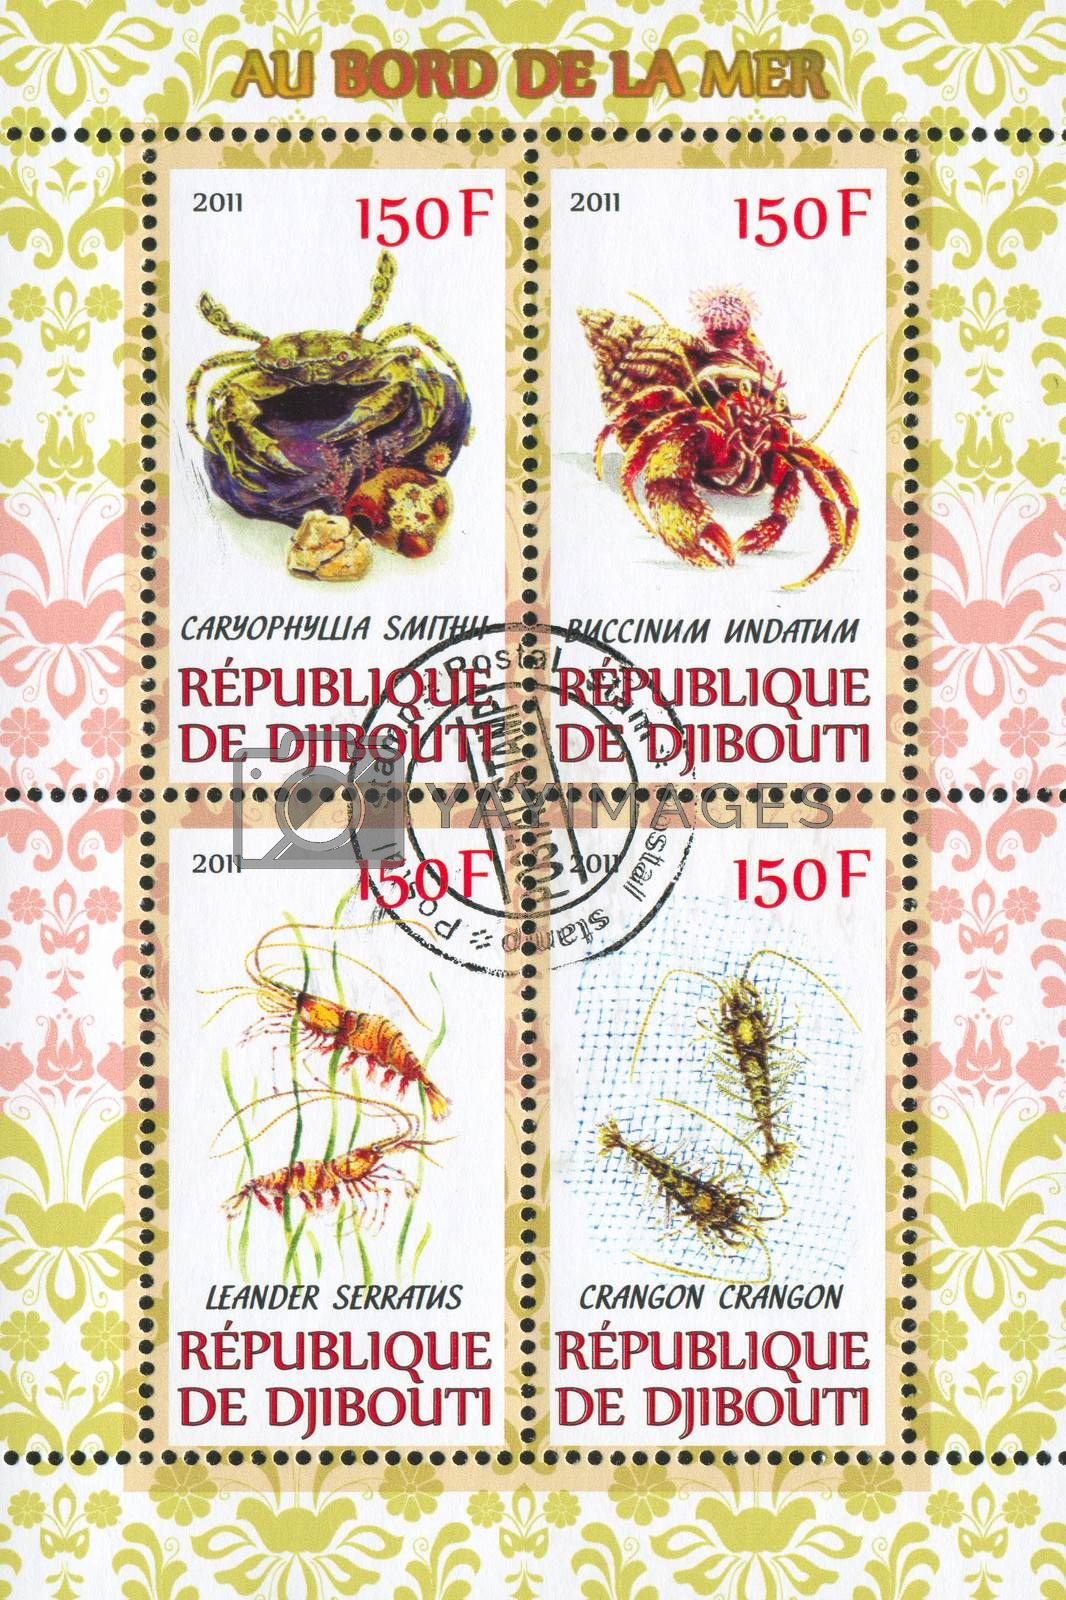 DJIBOUTI - CIRCA 2011: stamp printed by Djibouti, shows ocean animals, circa 2011